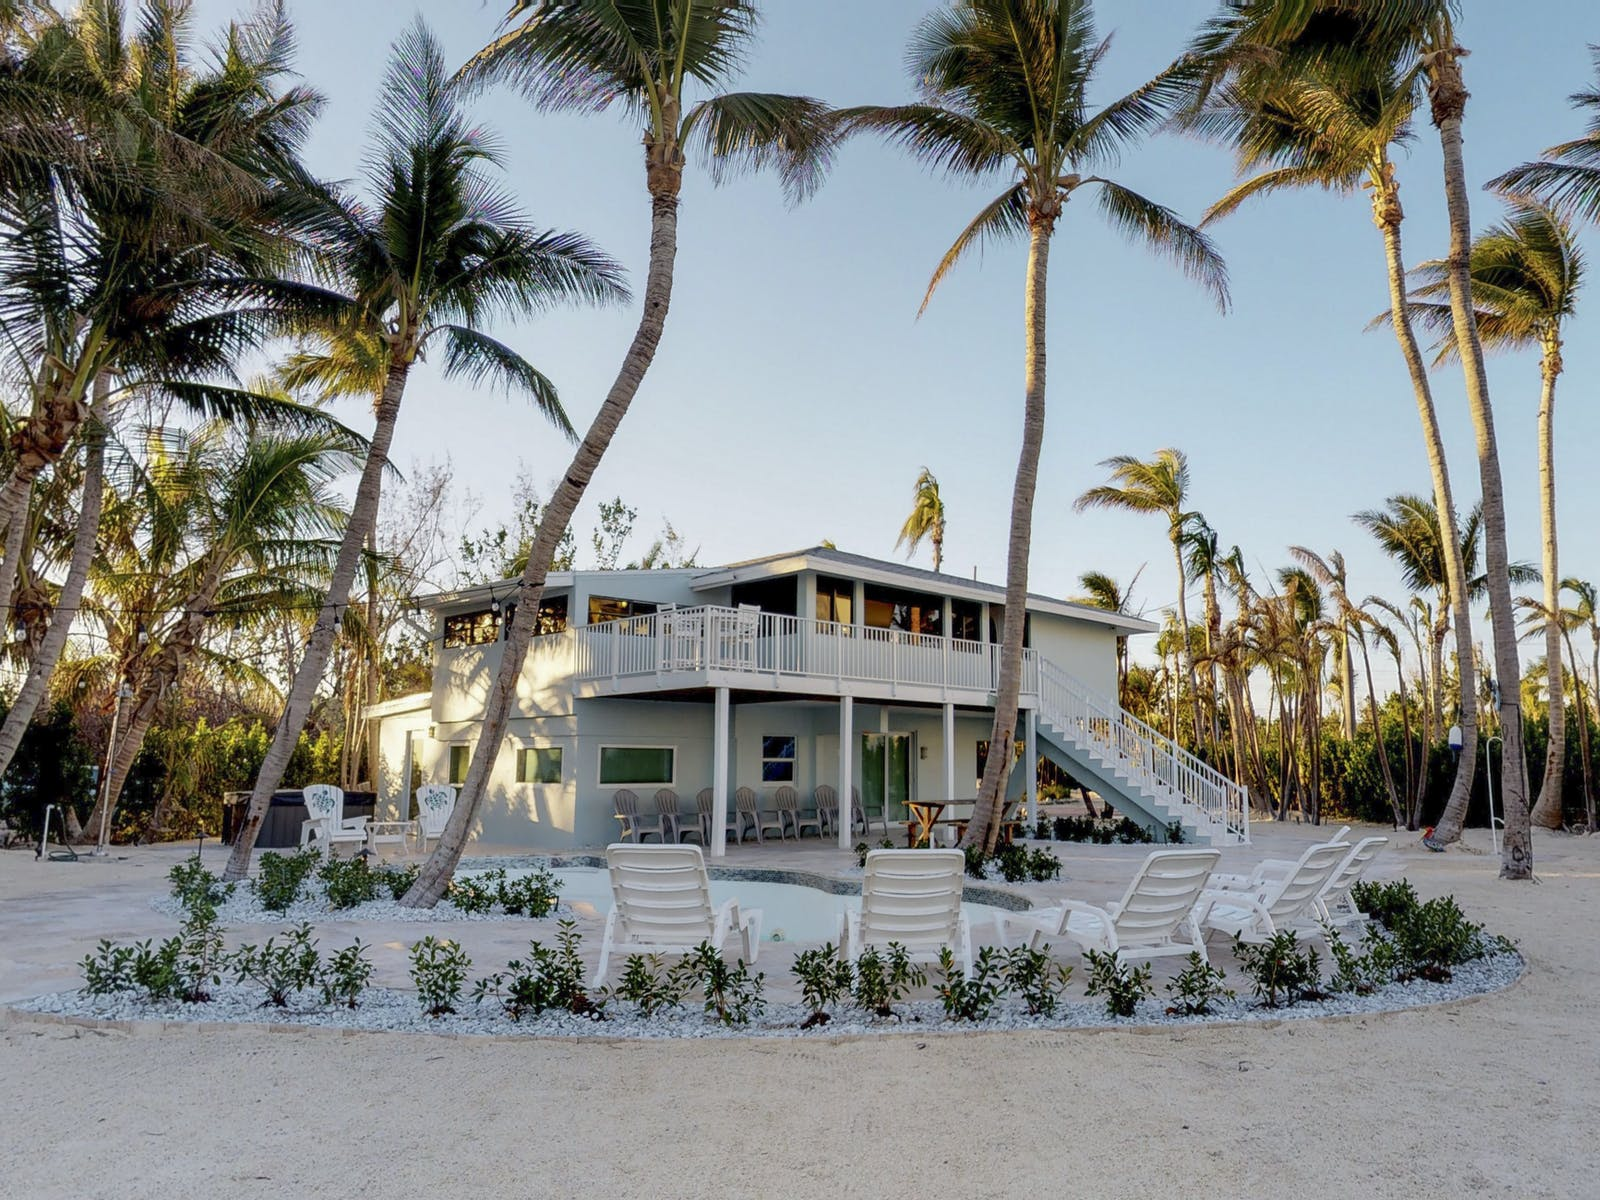 Vacation rental home in Islamorada, FL